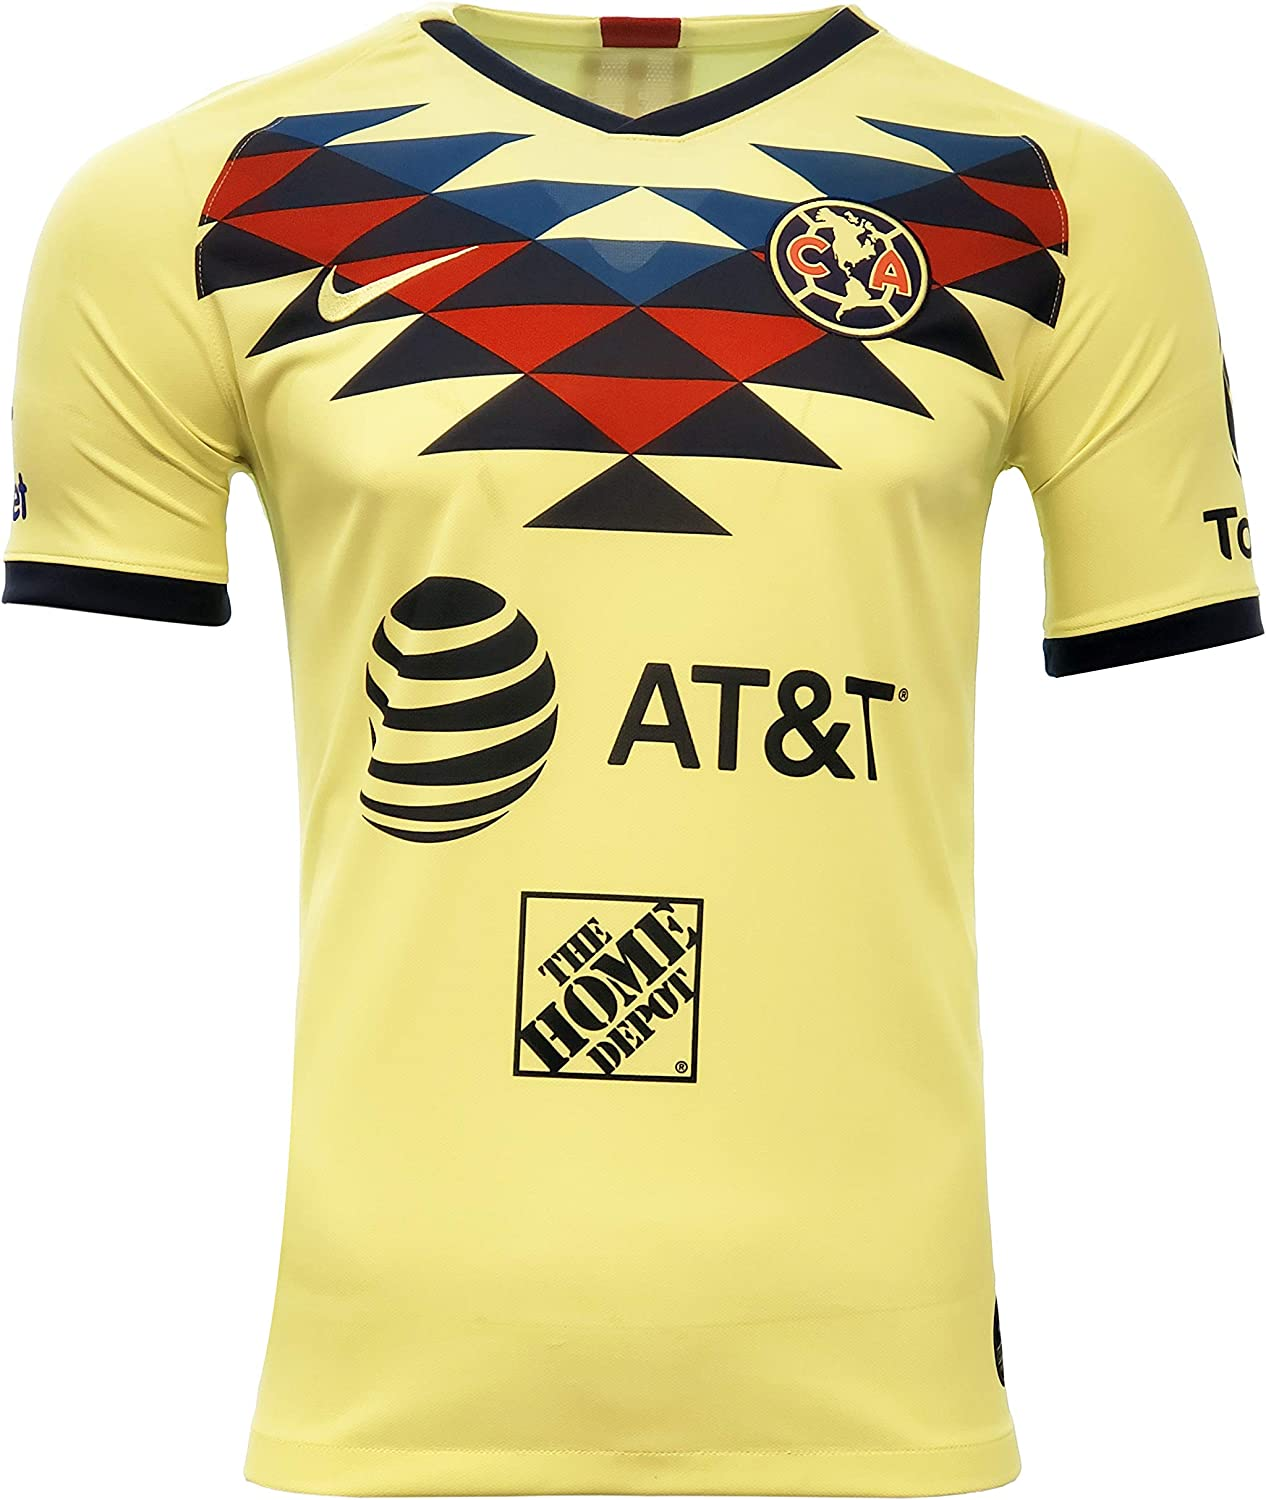 club america Away jersey20//21 Adult Sizes Available  Large